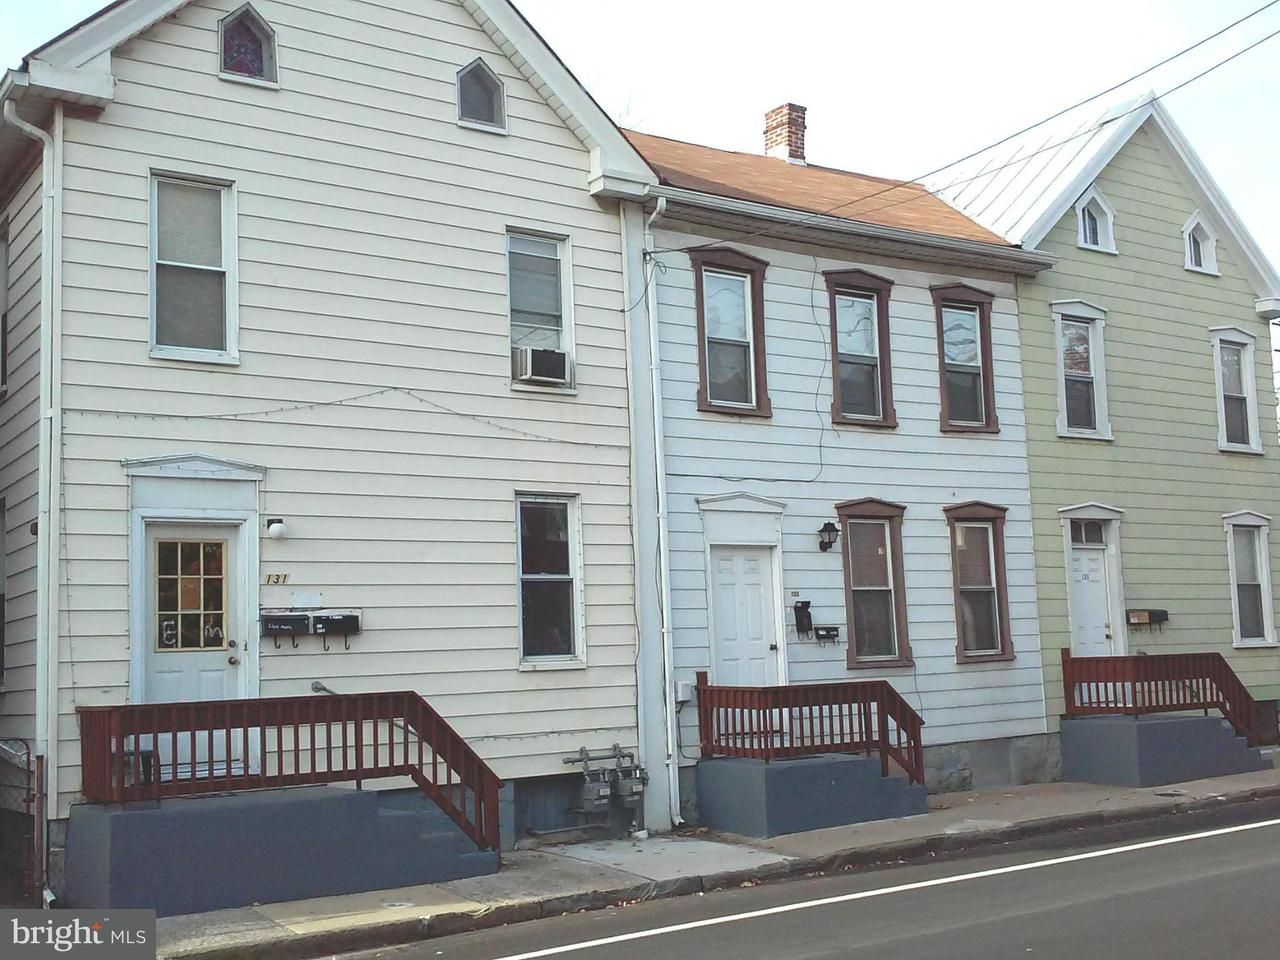 Other Residential for Sale at 131 S Mulberry St Hagerstown, Maryland 21740 United States